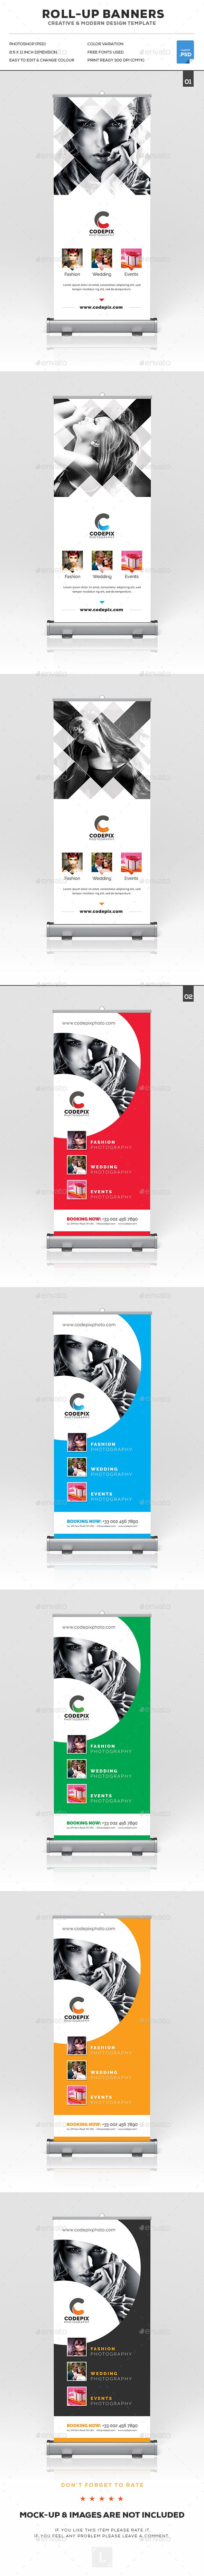 Photography Roll-Up Banner Templates PSD Bundle. Download here: graphicprime.com...